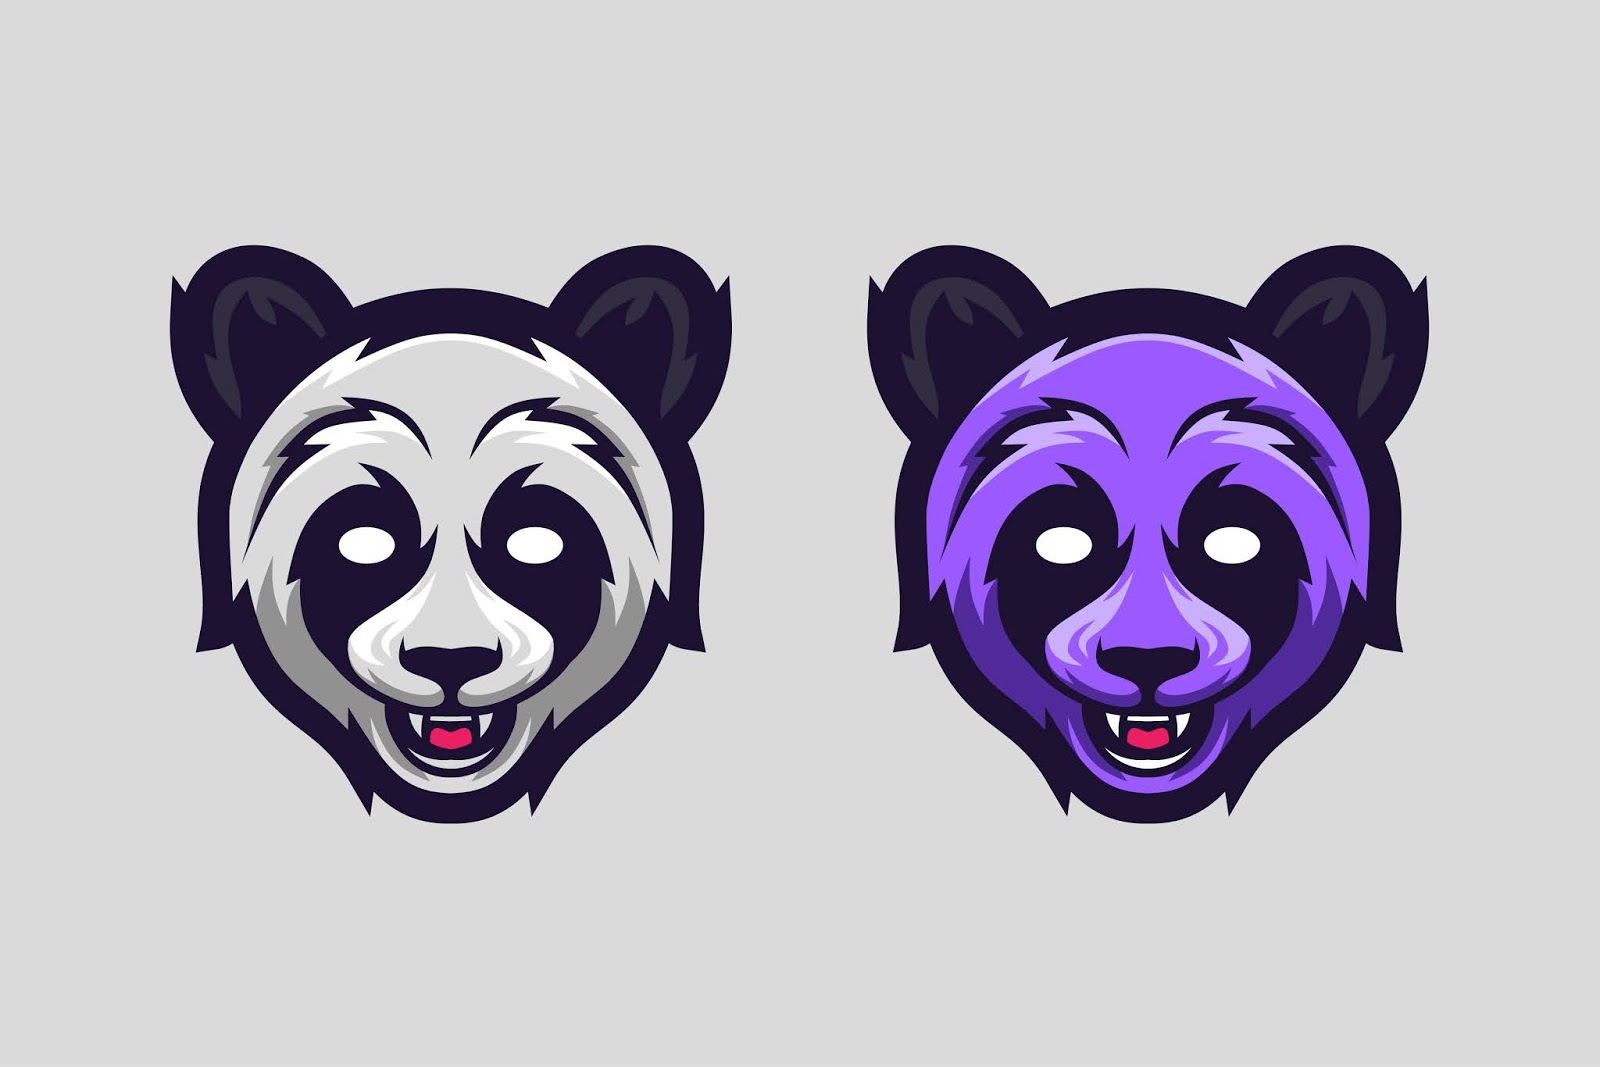 Panda Mascot Logo Option Color Free Download Vector CDR, AI, EPS and PNG Formats